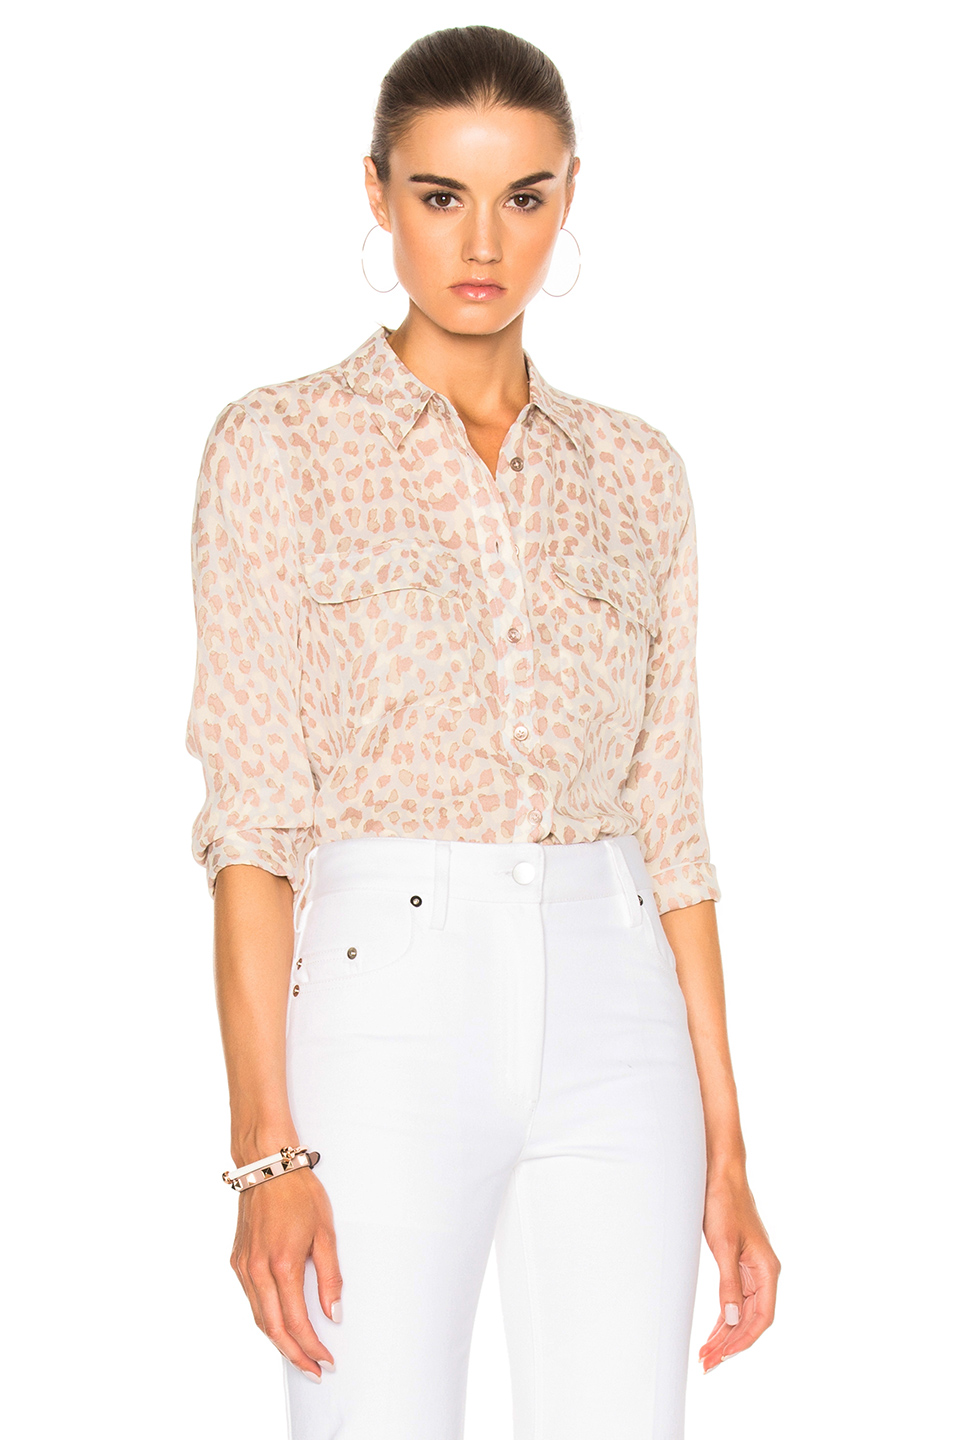 Equipment Cropped Sleeve Signature Top in Abstract,Animal Print,Neutrals